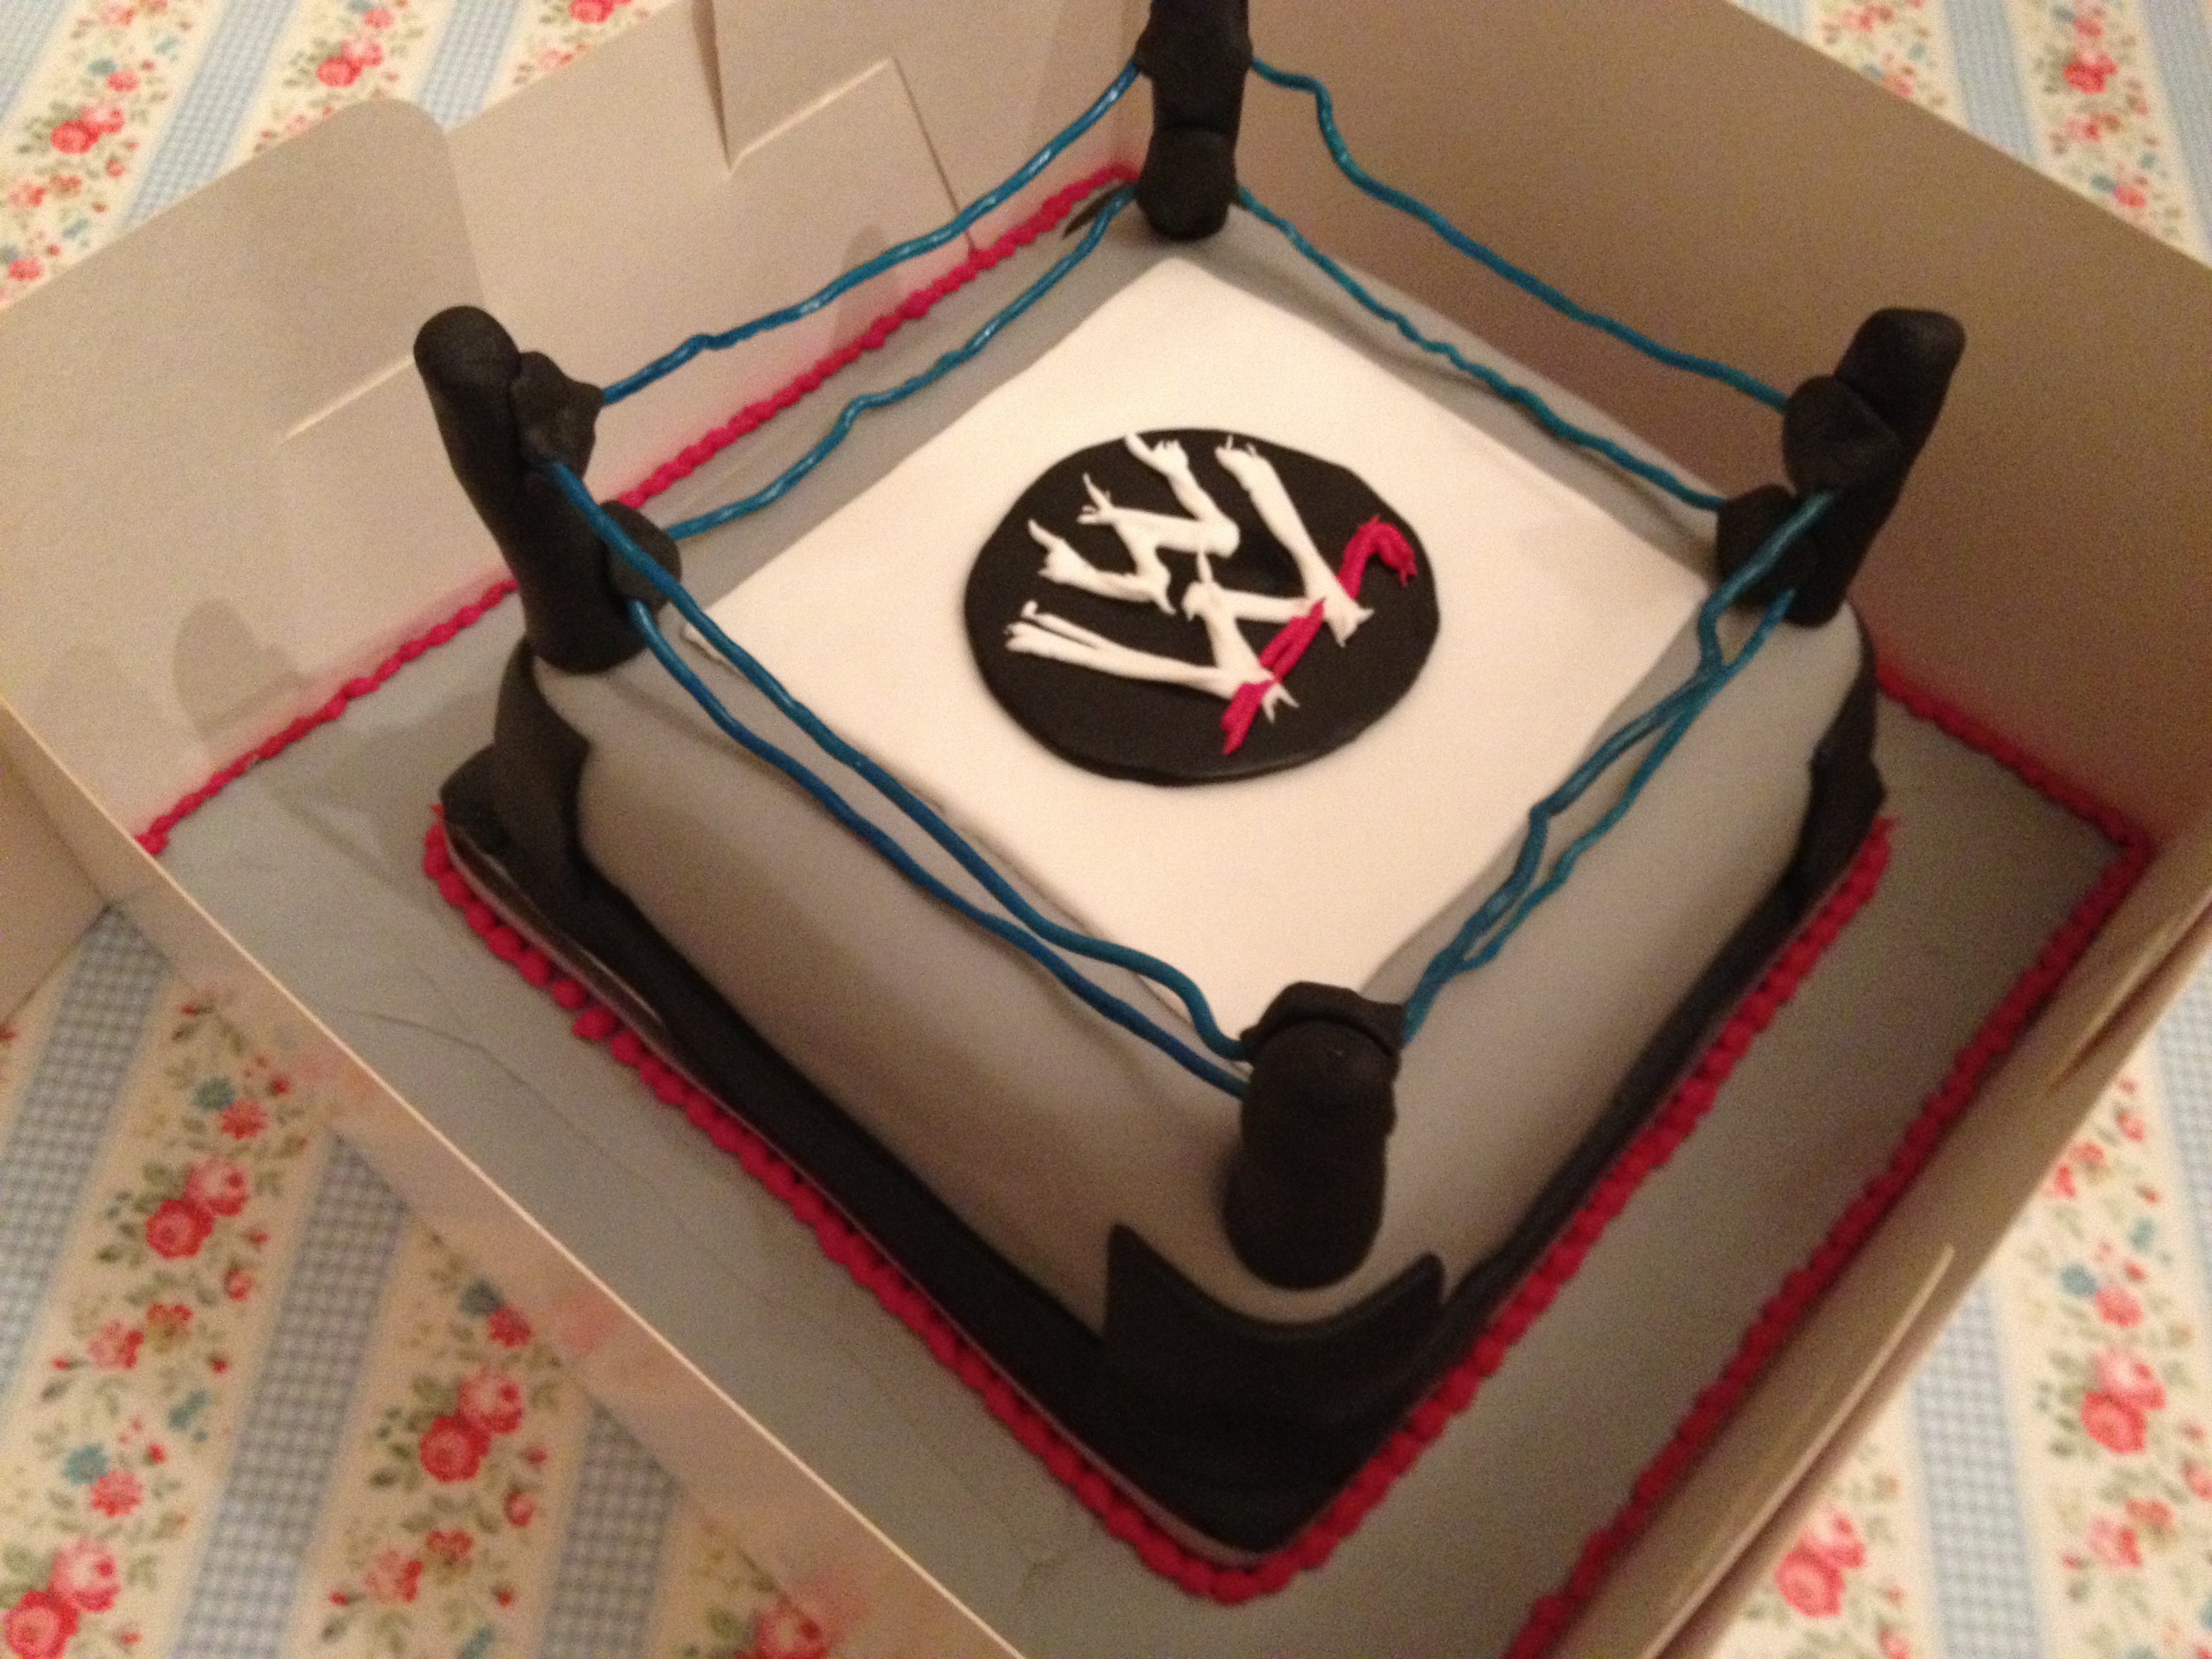 Remarkable Wwe Wrestling Ring Birthday Cake Make Bake Sew Funny Birthday Cards Online Alyptdamsfinfo